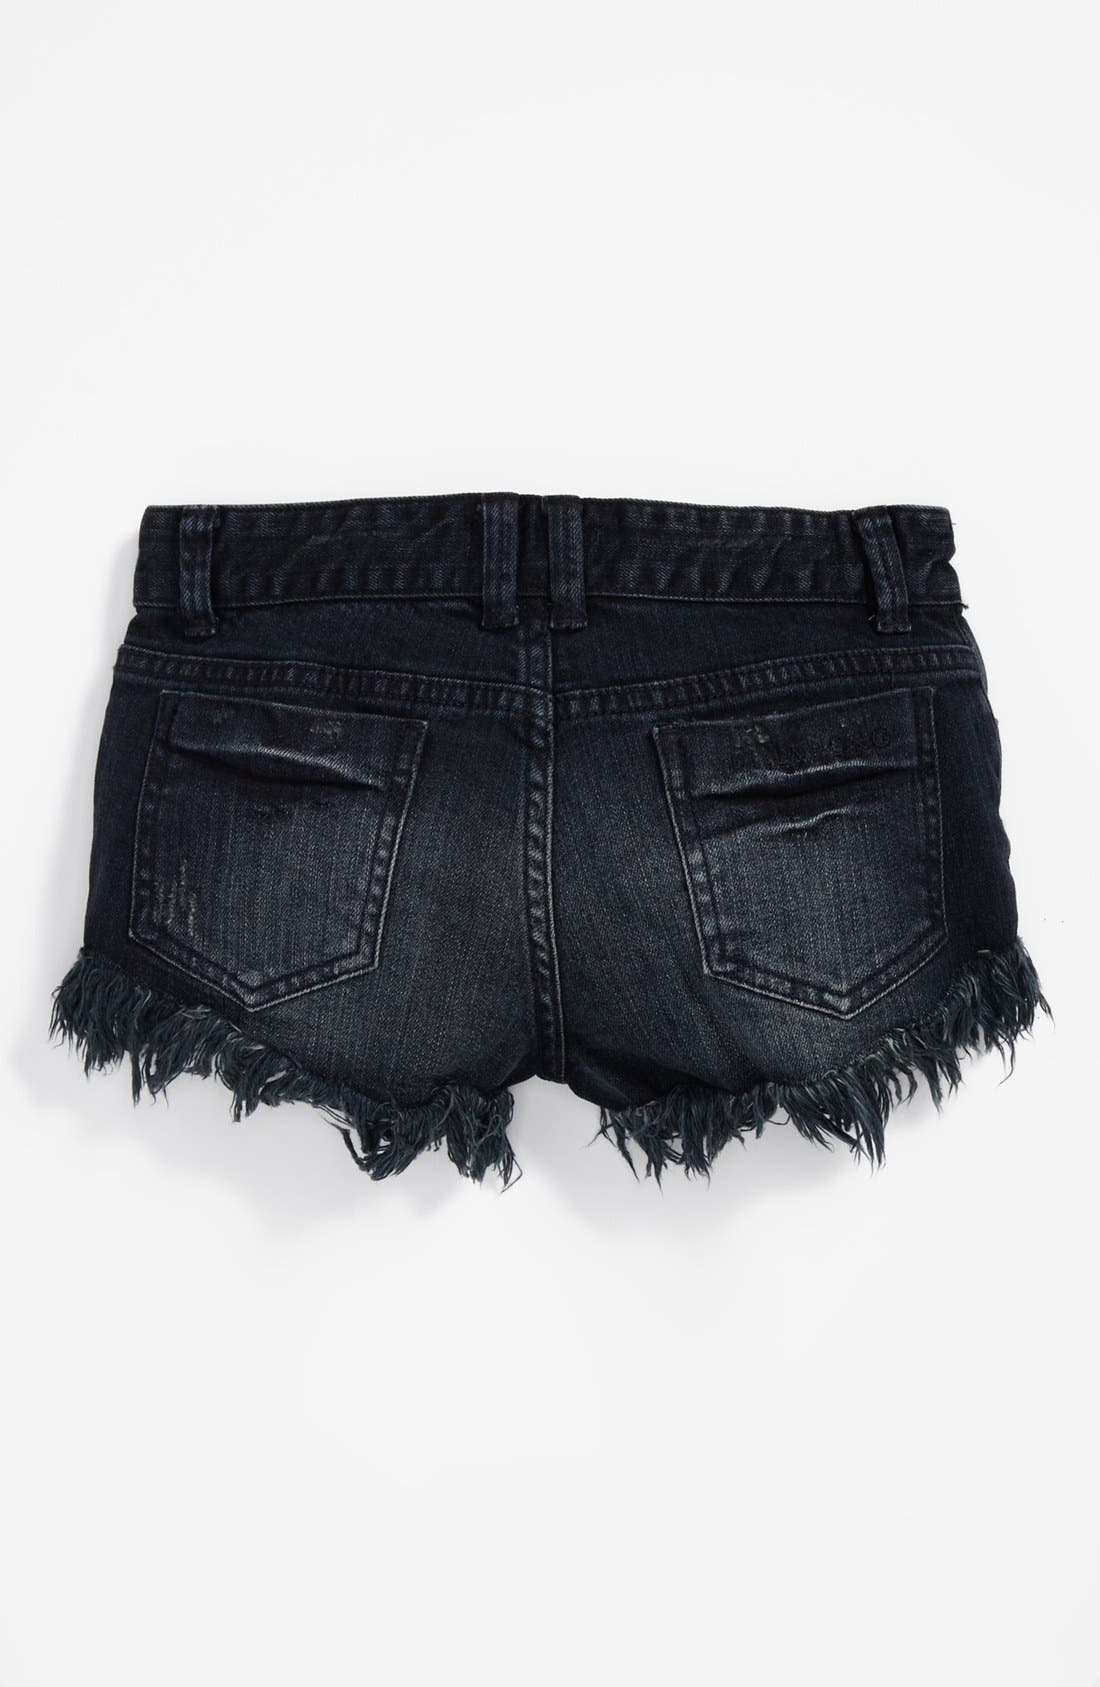 Alternate Image 1 Selected - Billabong 'Beach Out' Denim Shorts (Big Girls)